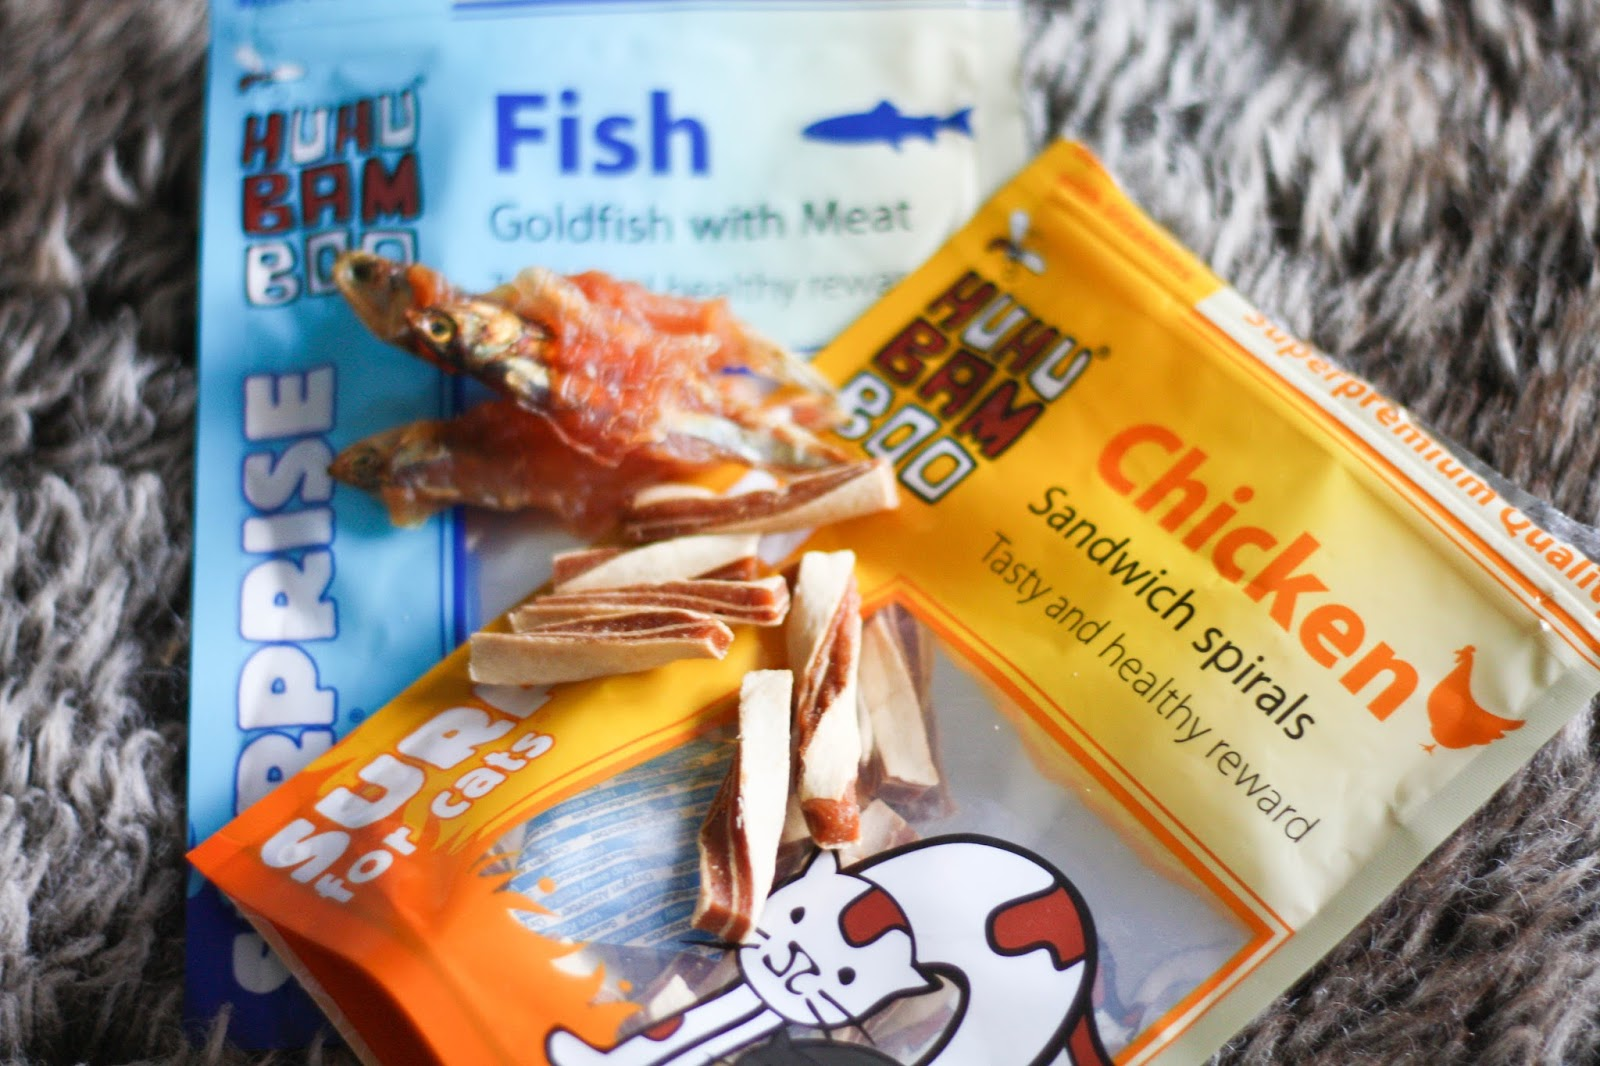 Feline Foodology: Goldfish with meat & Sandwich spirals by HuHuBamboo